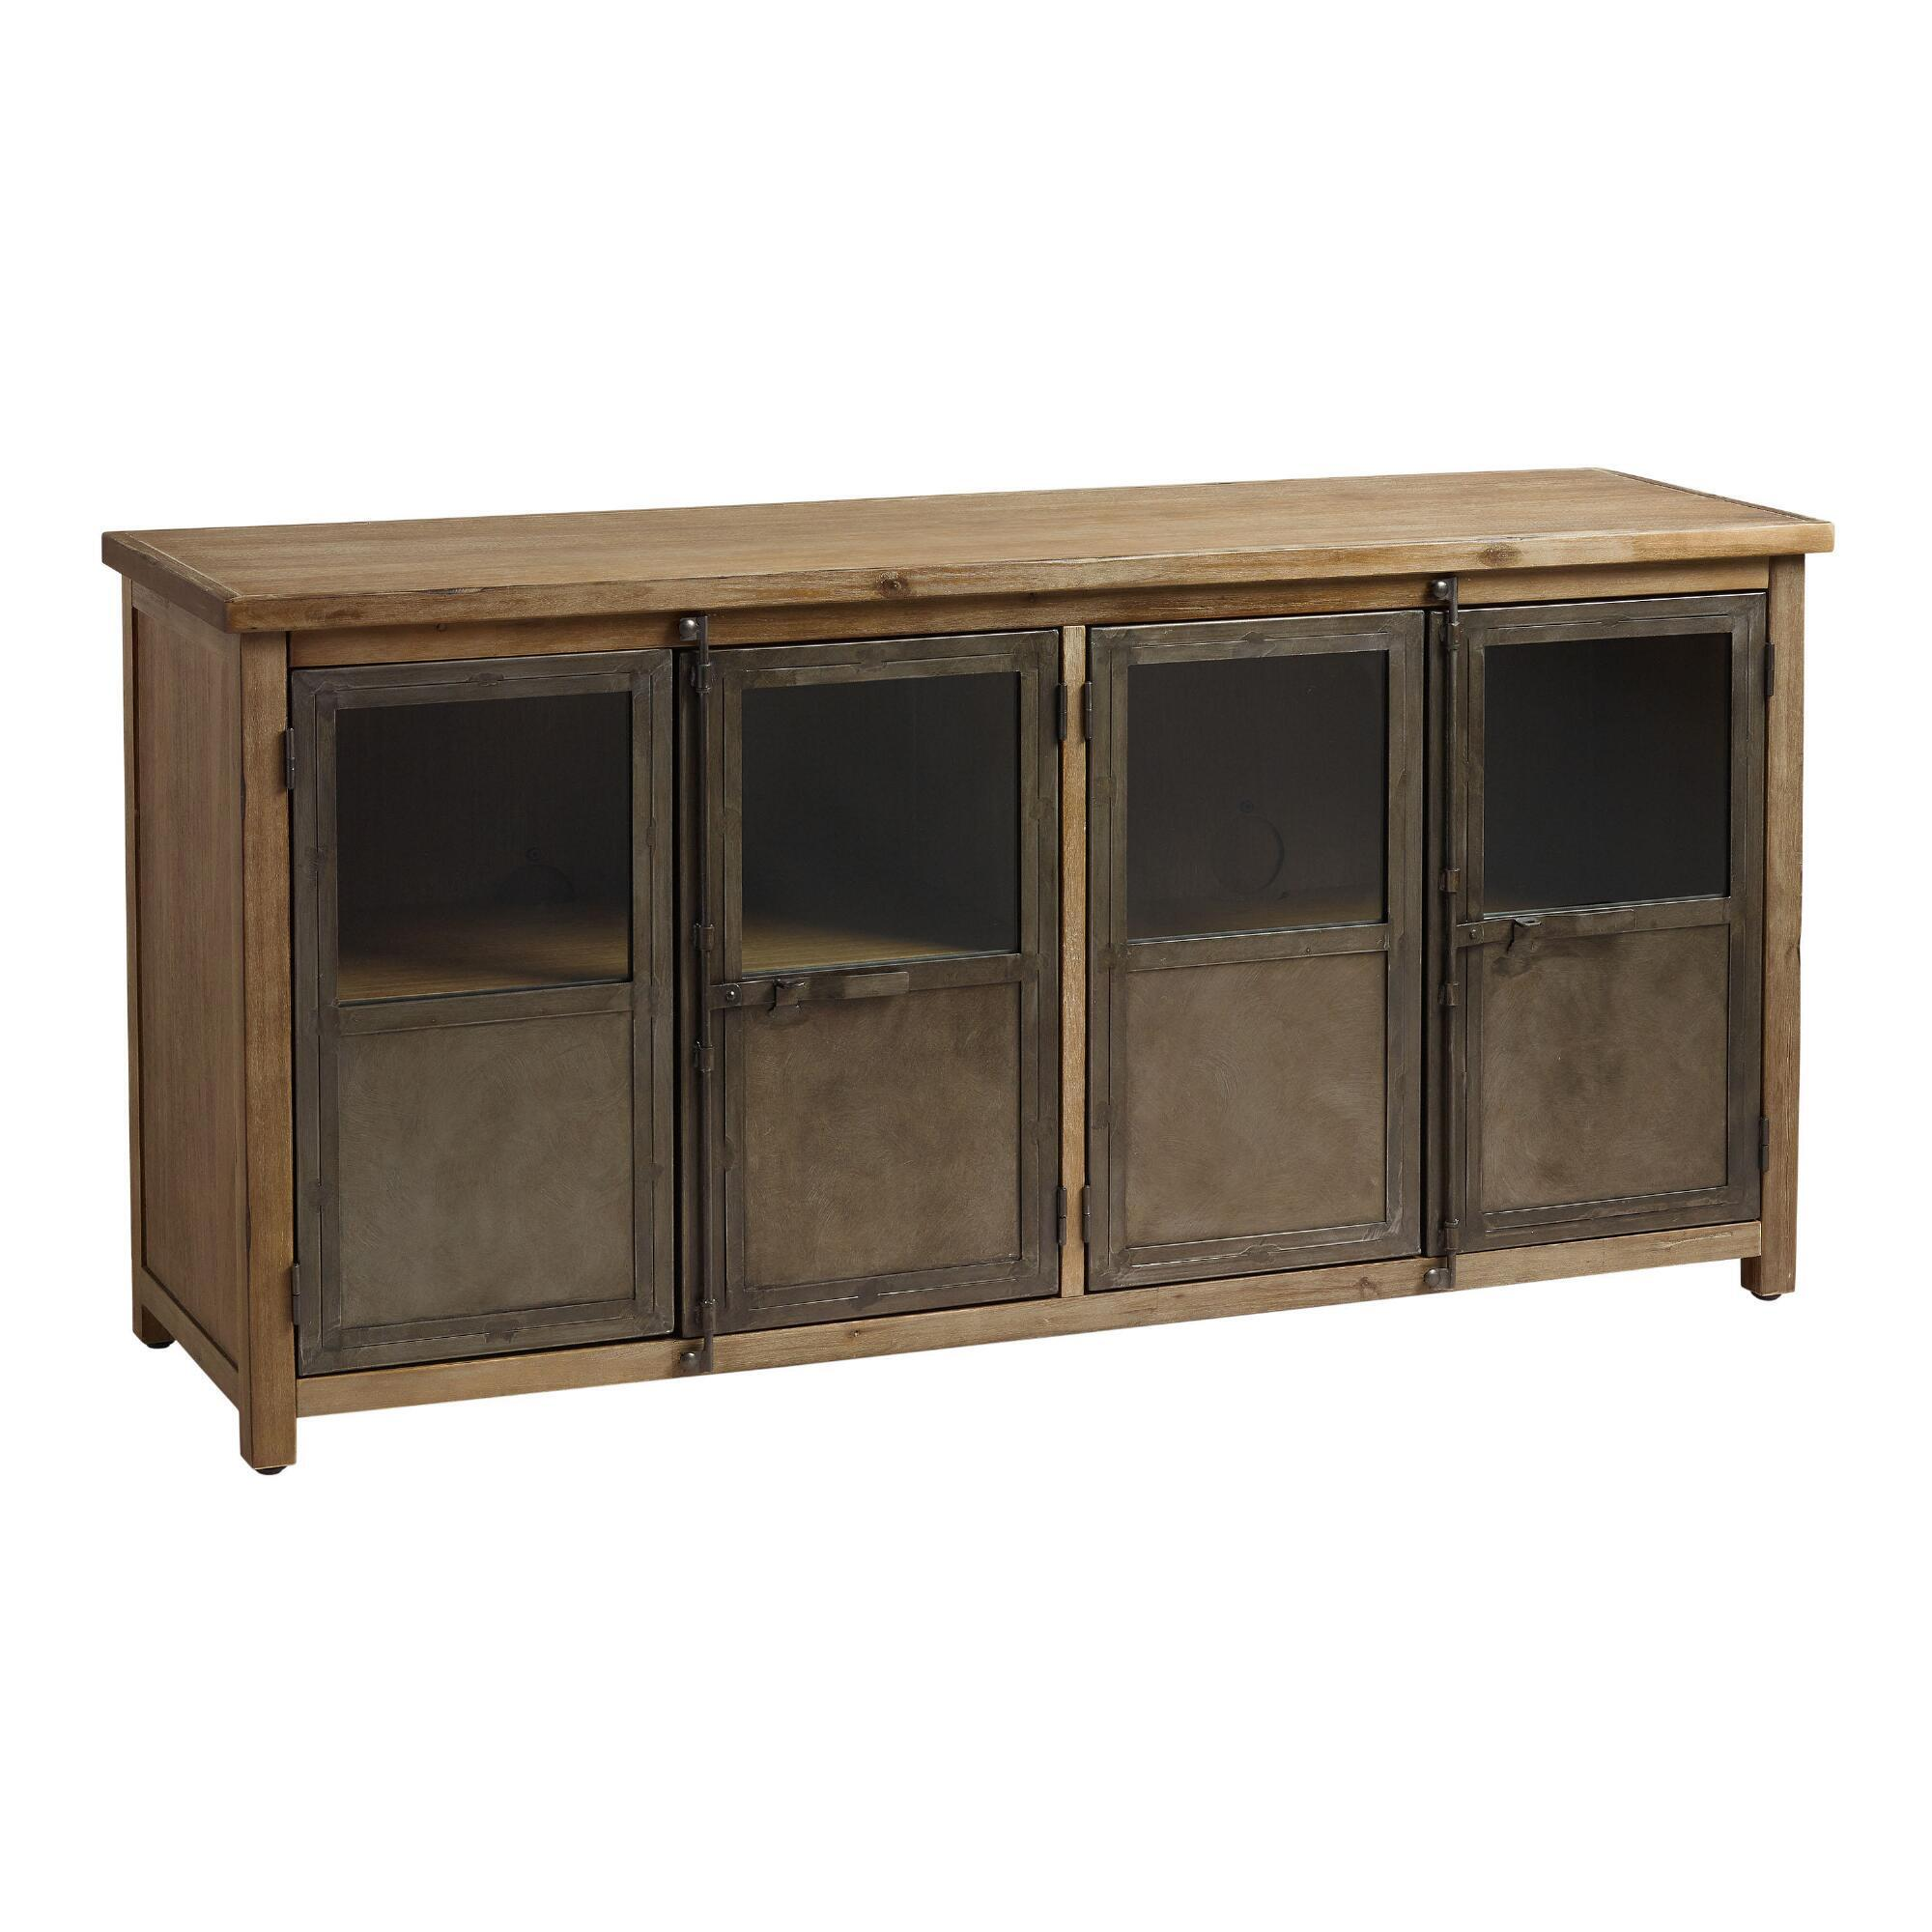 Langley Storage Cabinet: Brown - Wood by World Market